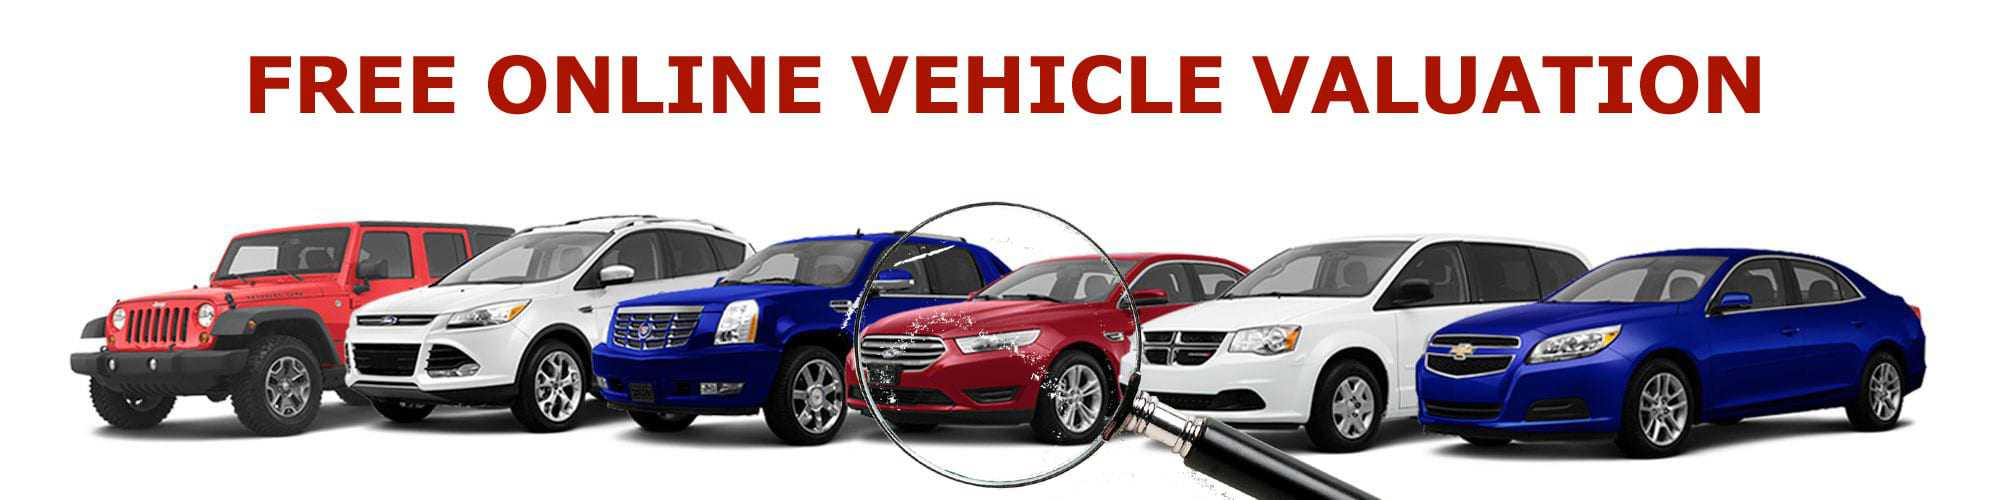 Free Online Vehicle Valuation